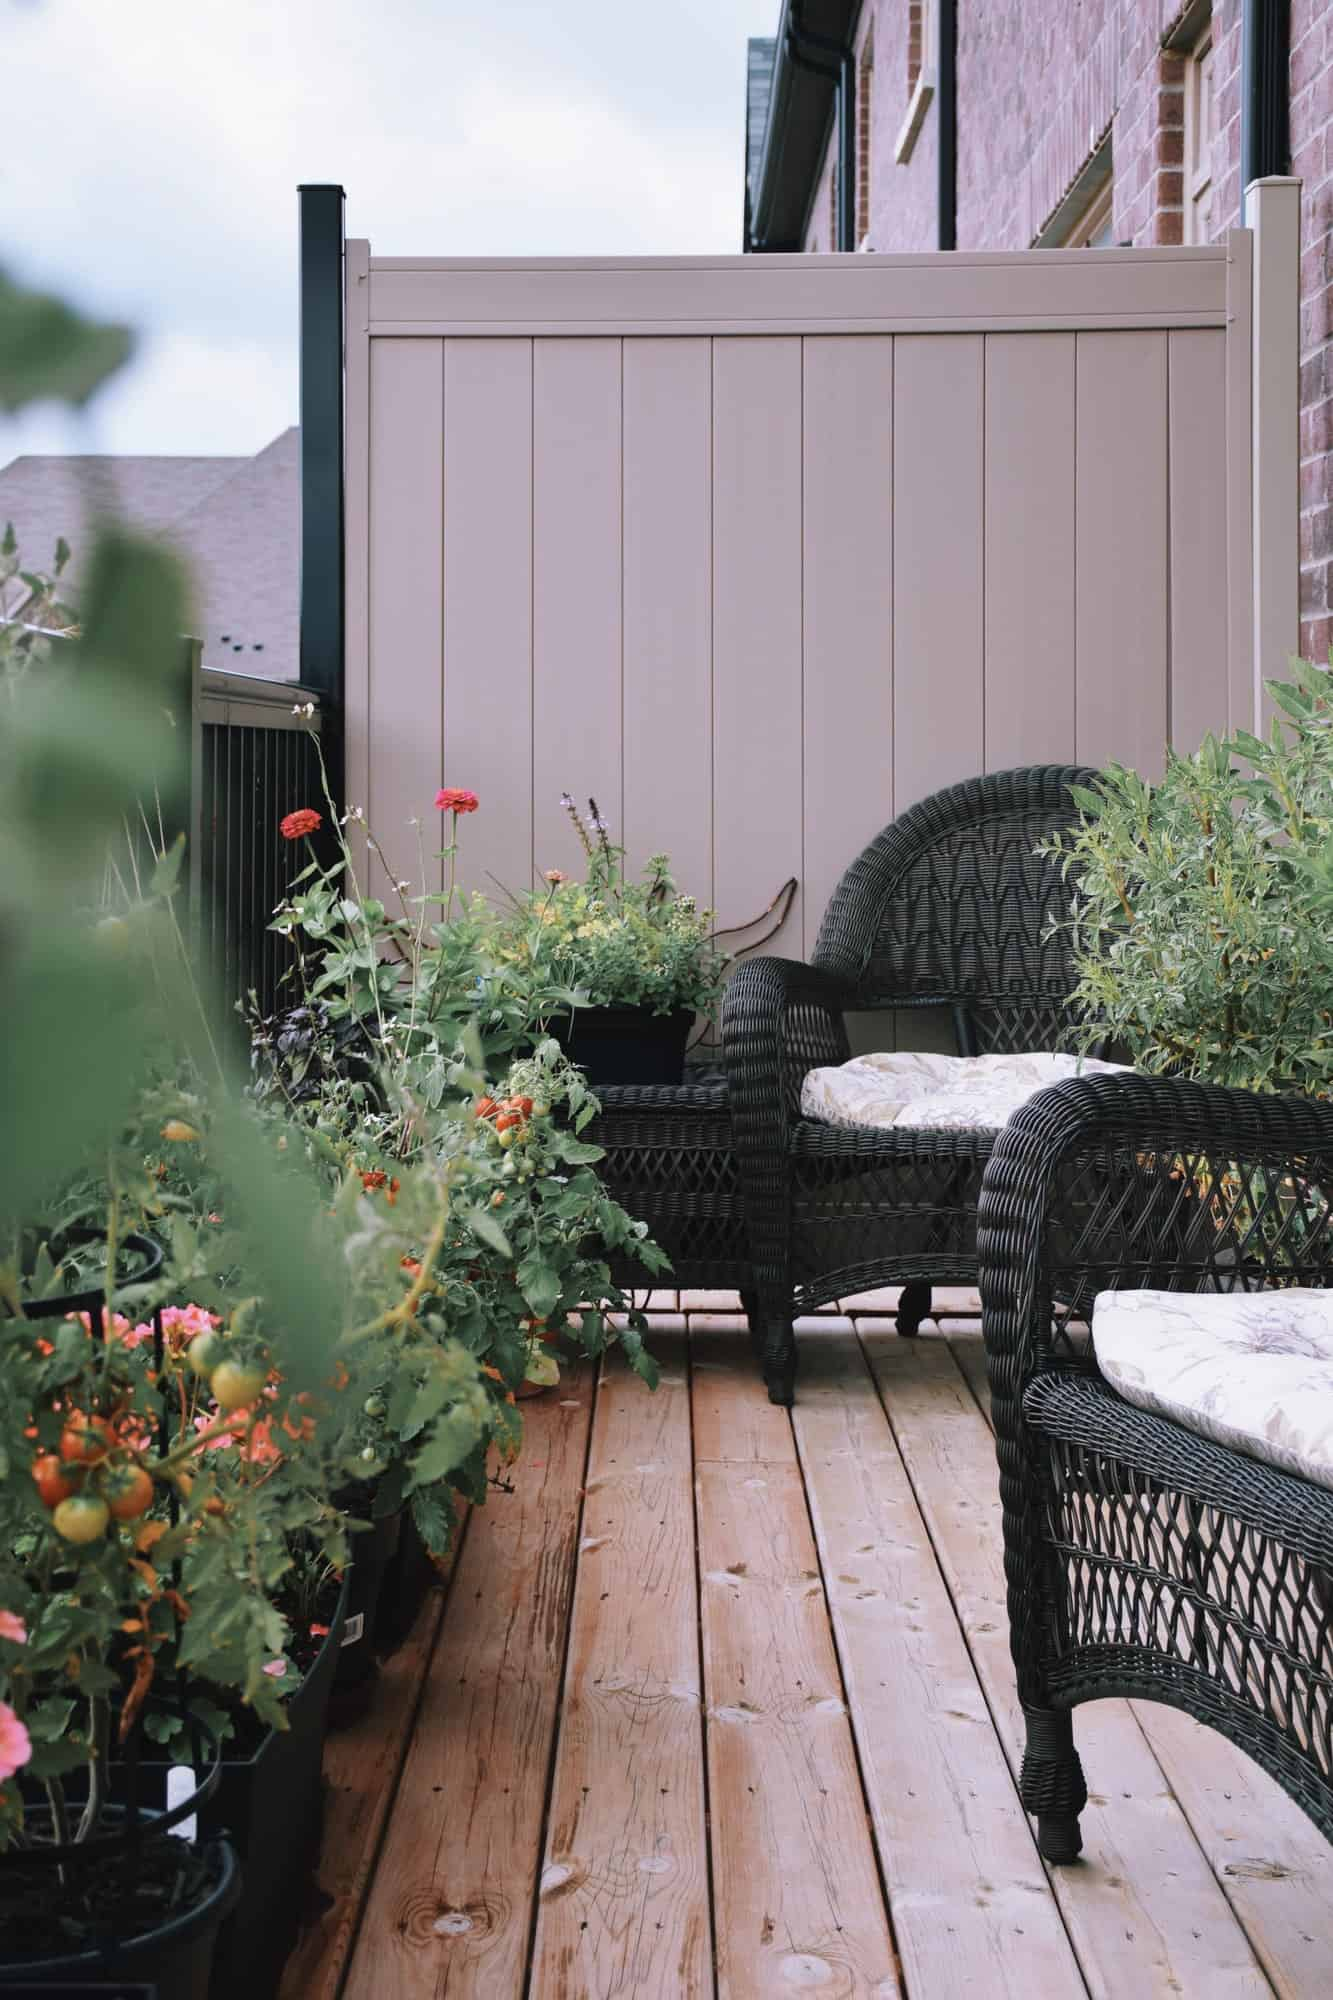 Balcony with outdoor furniture, tomato plants and flowers